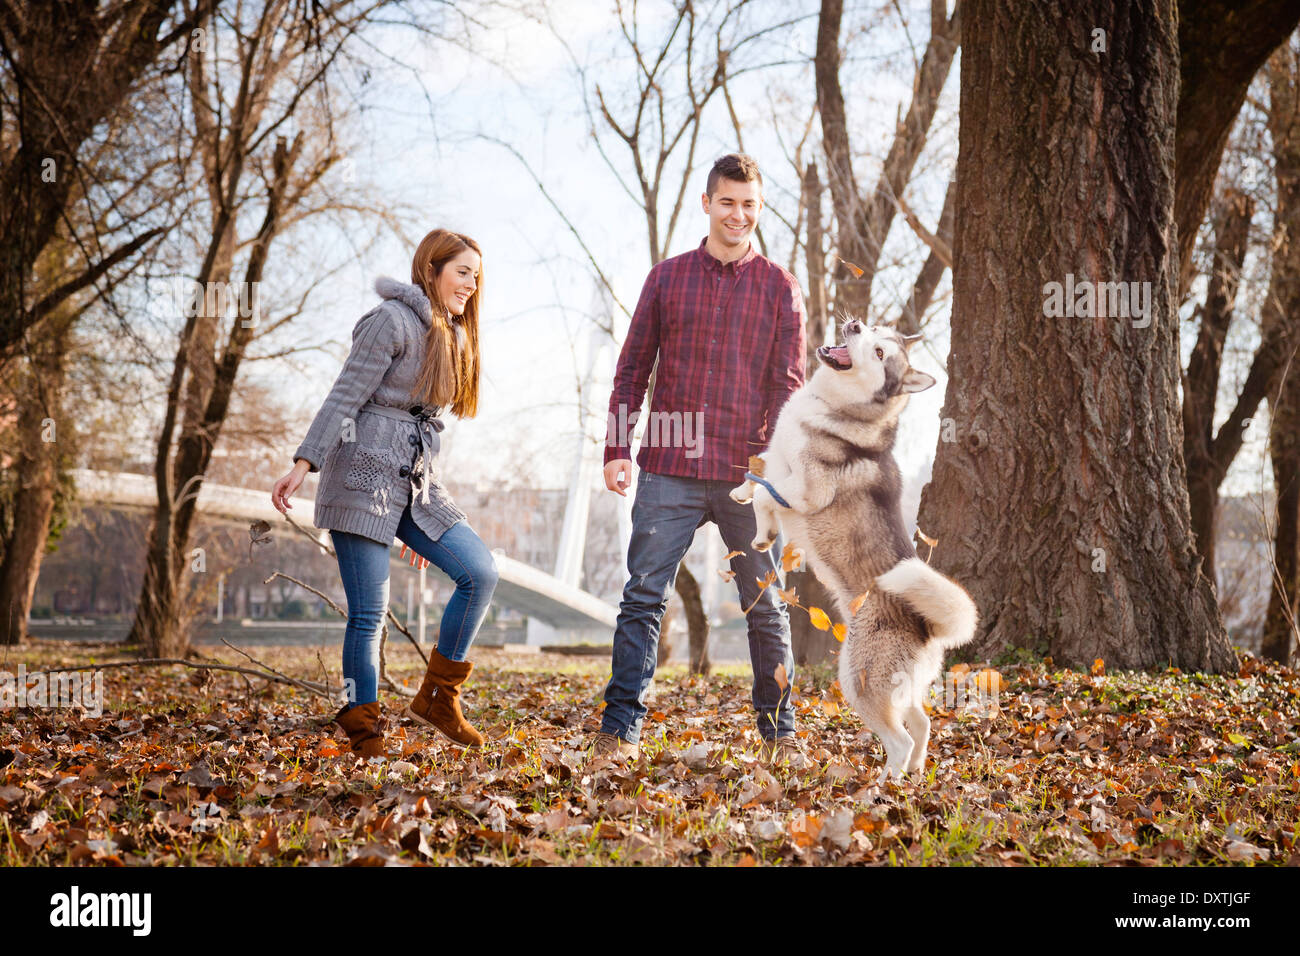 Couple with Dog in Park, Croatia - Stock Image